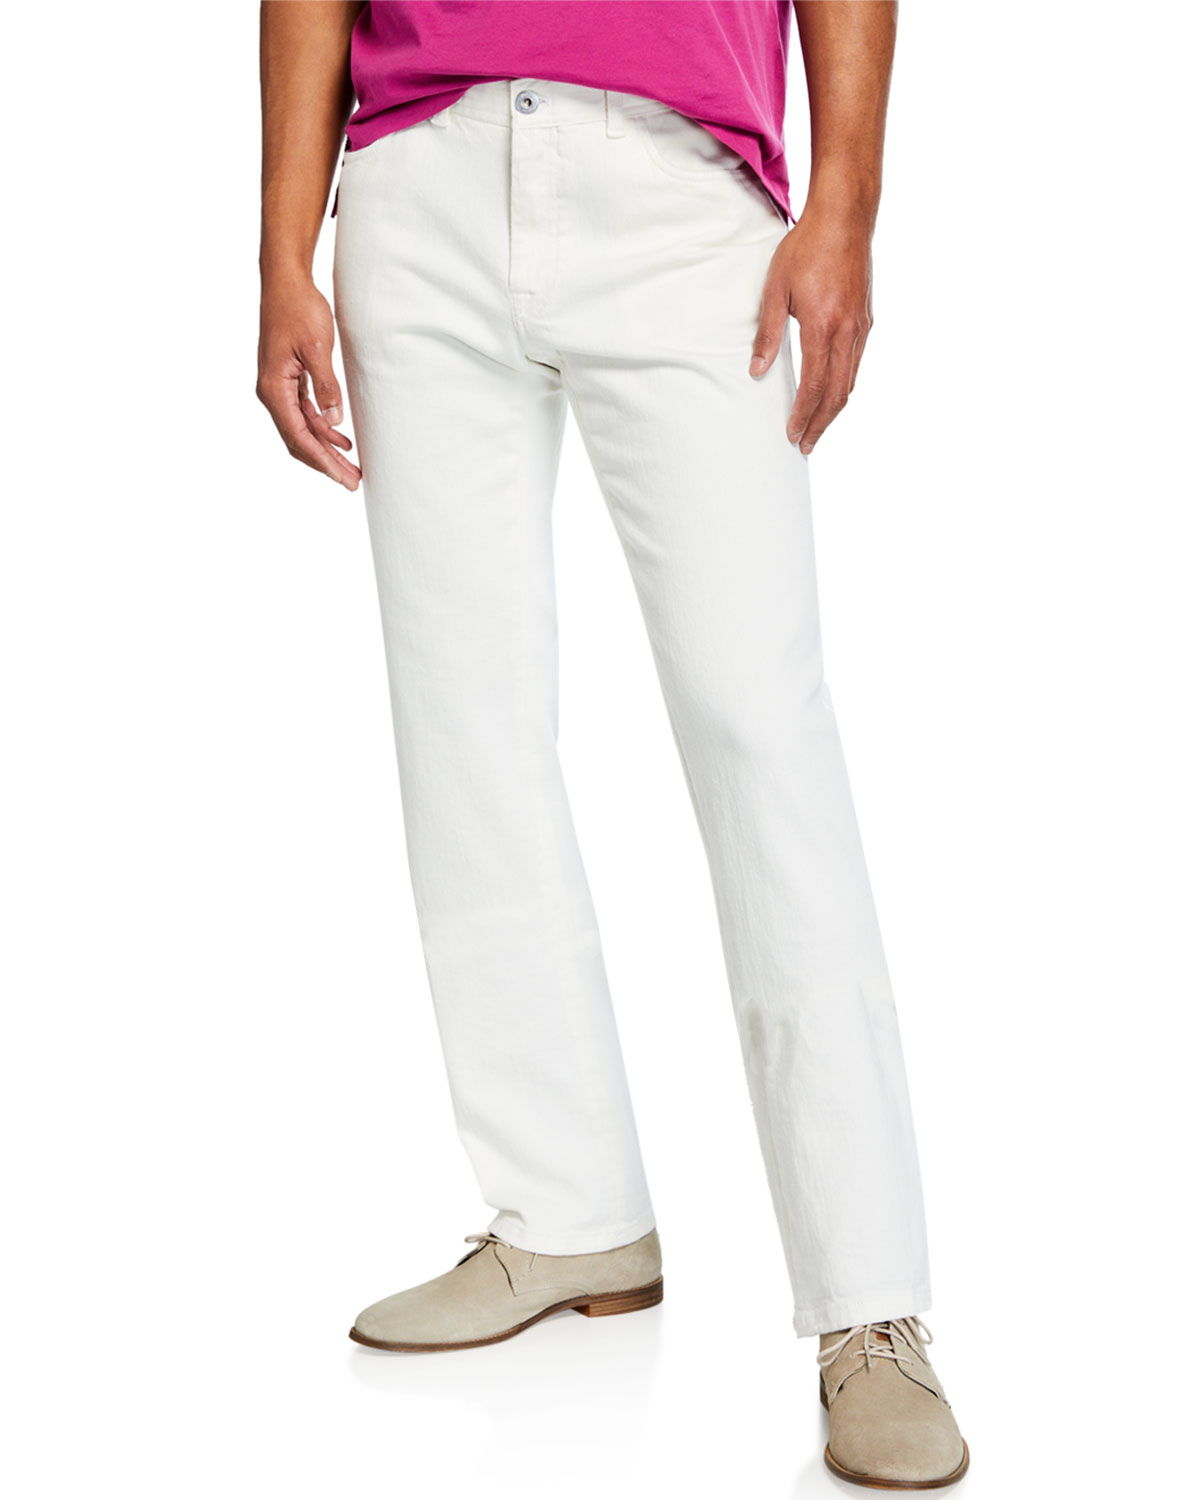 Brioni Men's Pants with Pocket Detail